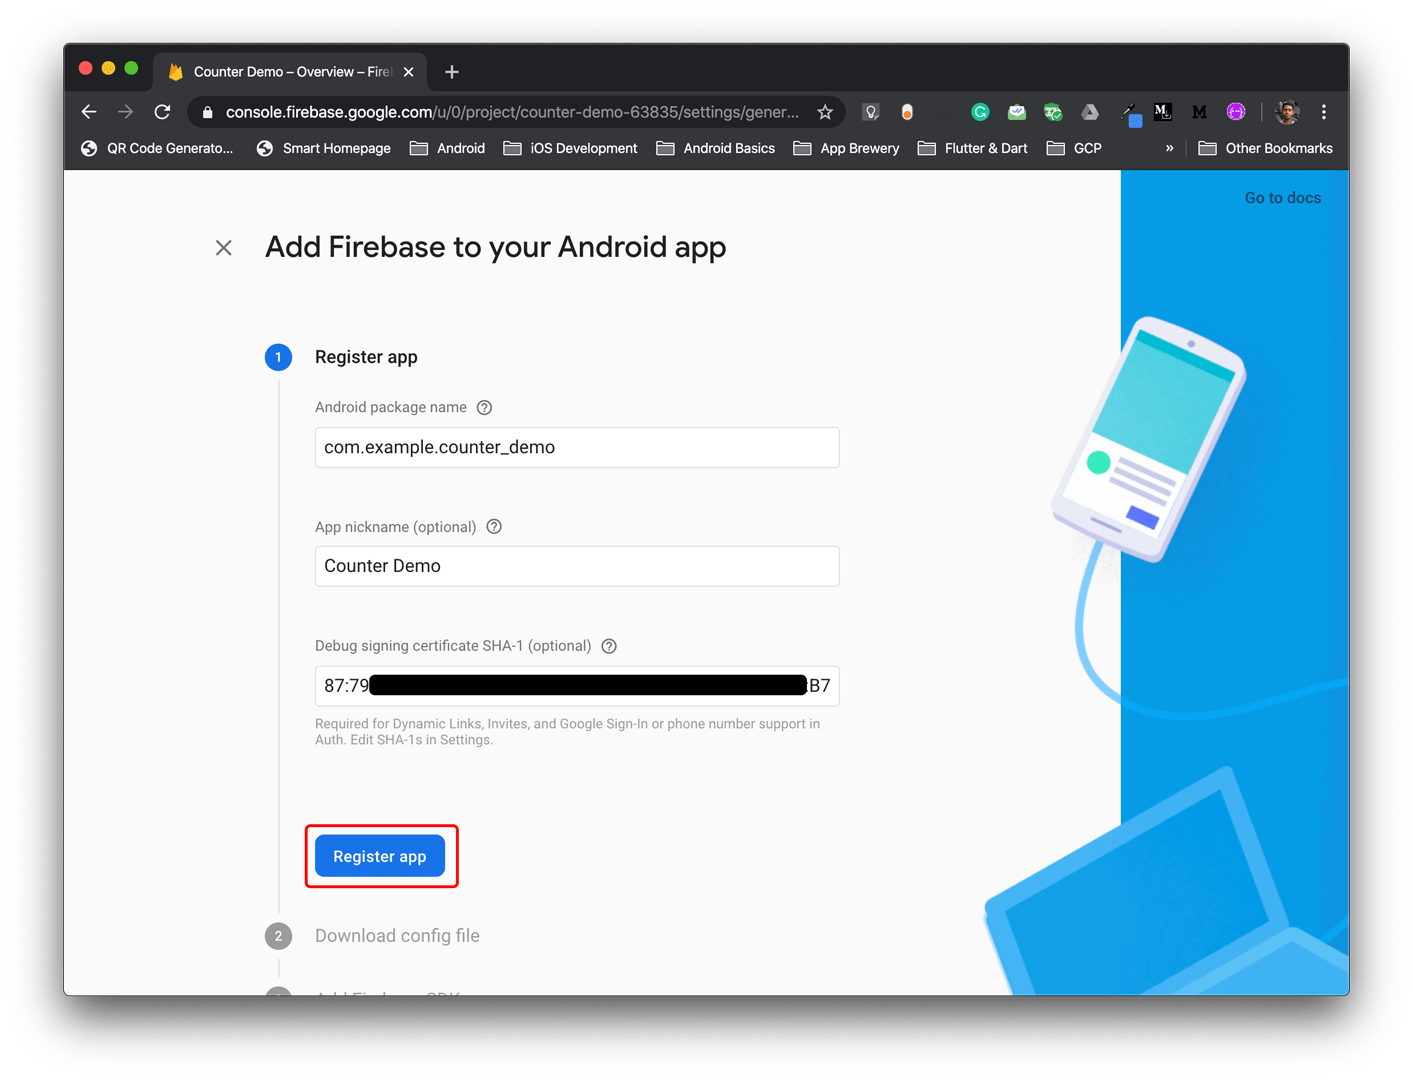 Firebase Android project